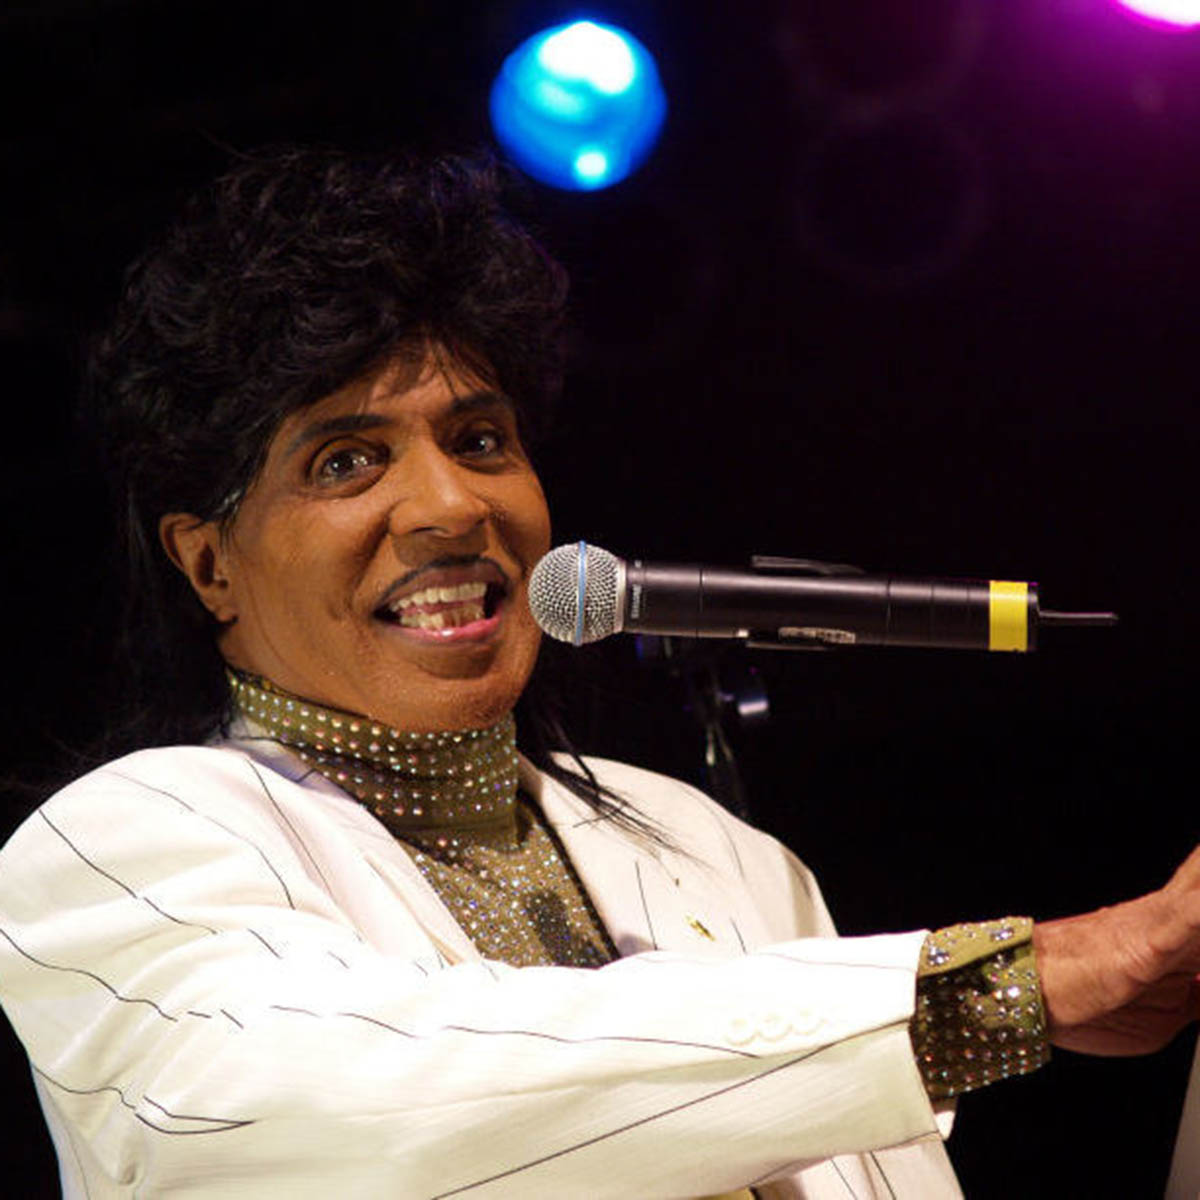 Little Richard Inserted The Roll In Rock N Roll